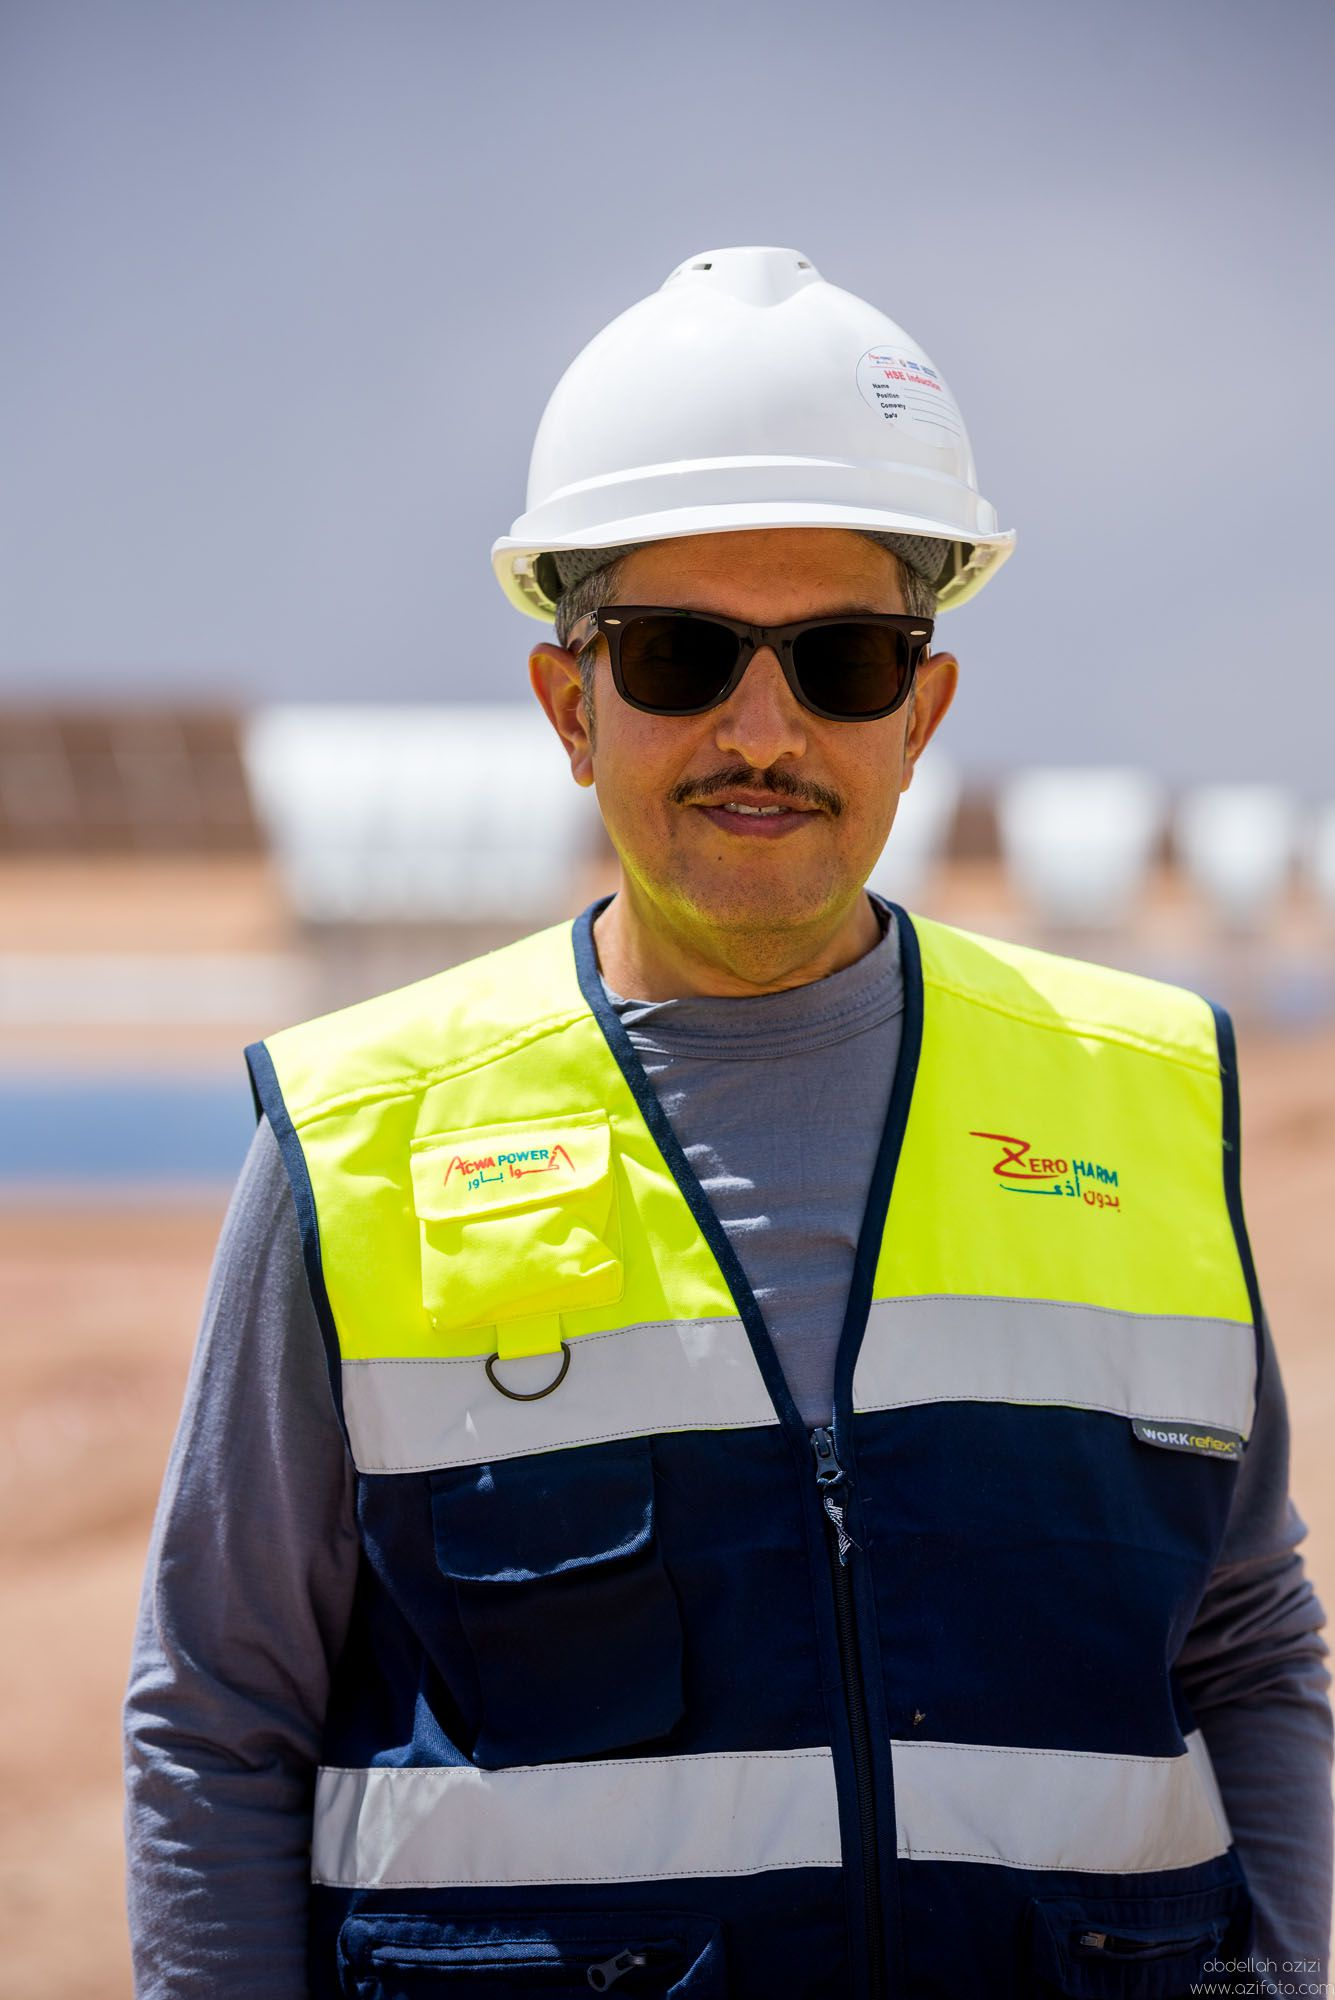 Mohammad Abunayyan Chairman of ACWA Power